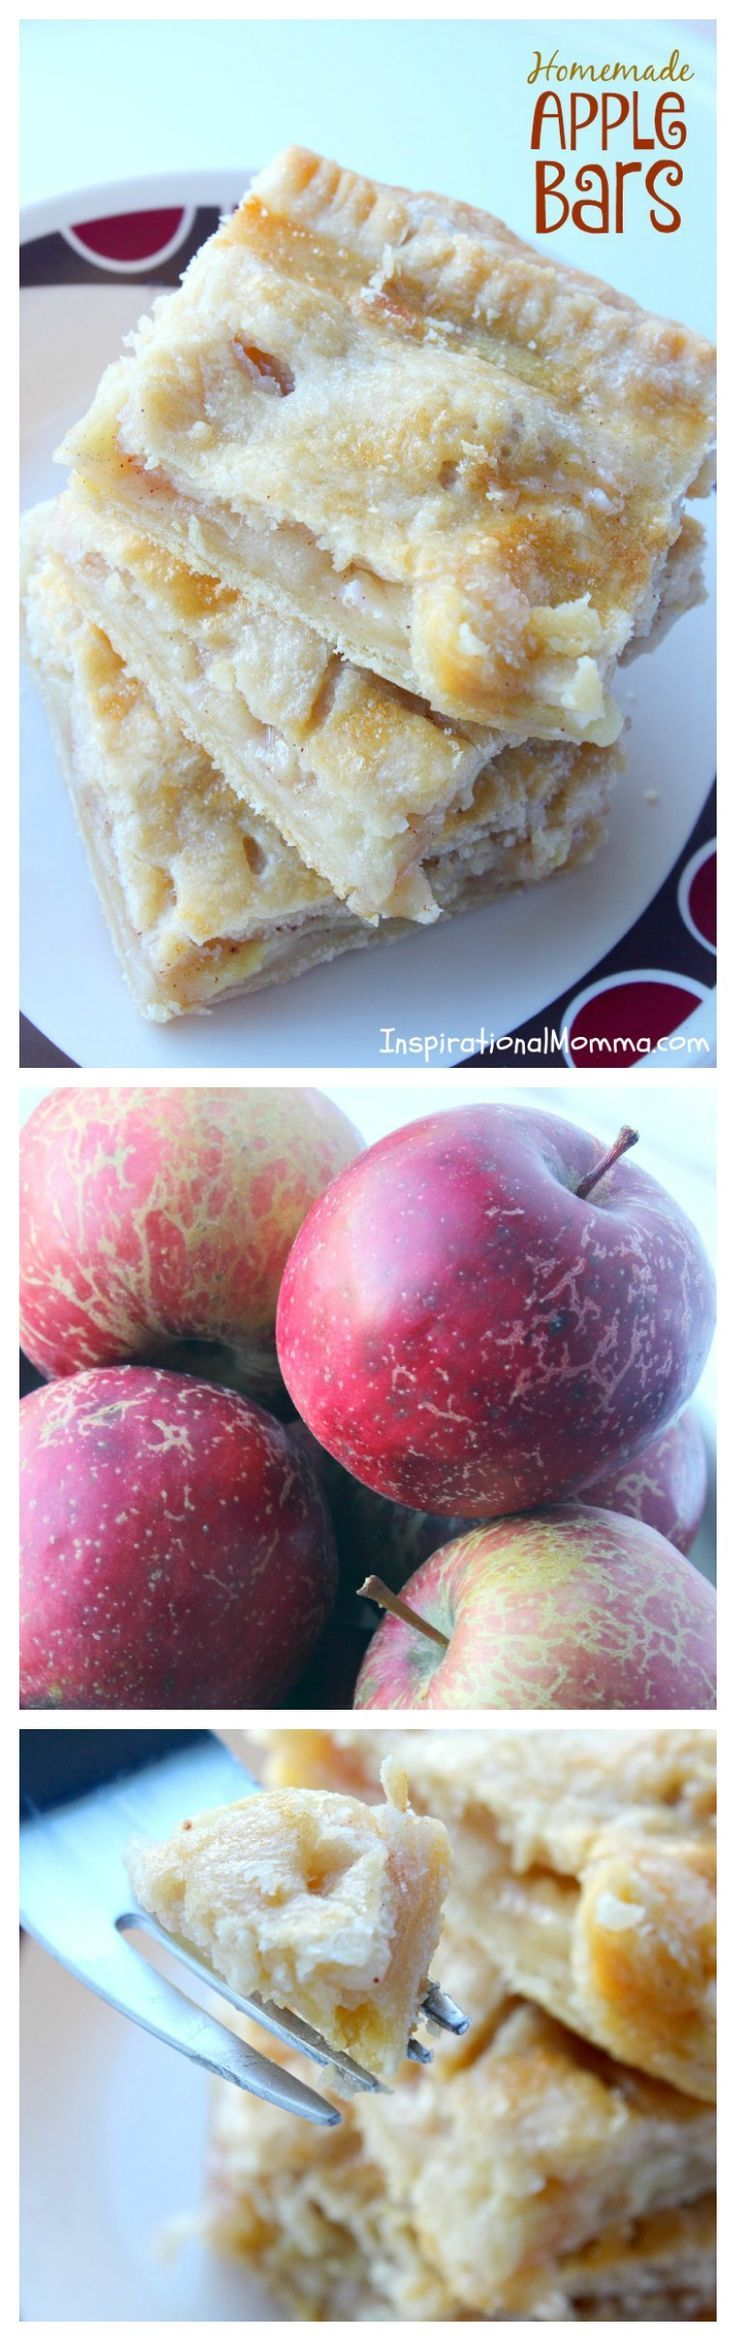 Homemade Apple Bars - A delicious homemade dessert with fresh apples layered on top of a light, flaky crust.